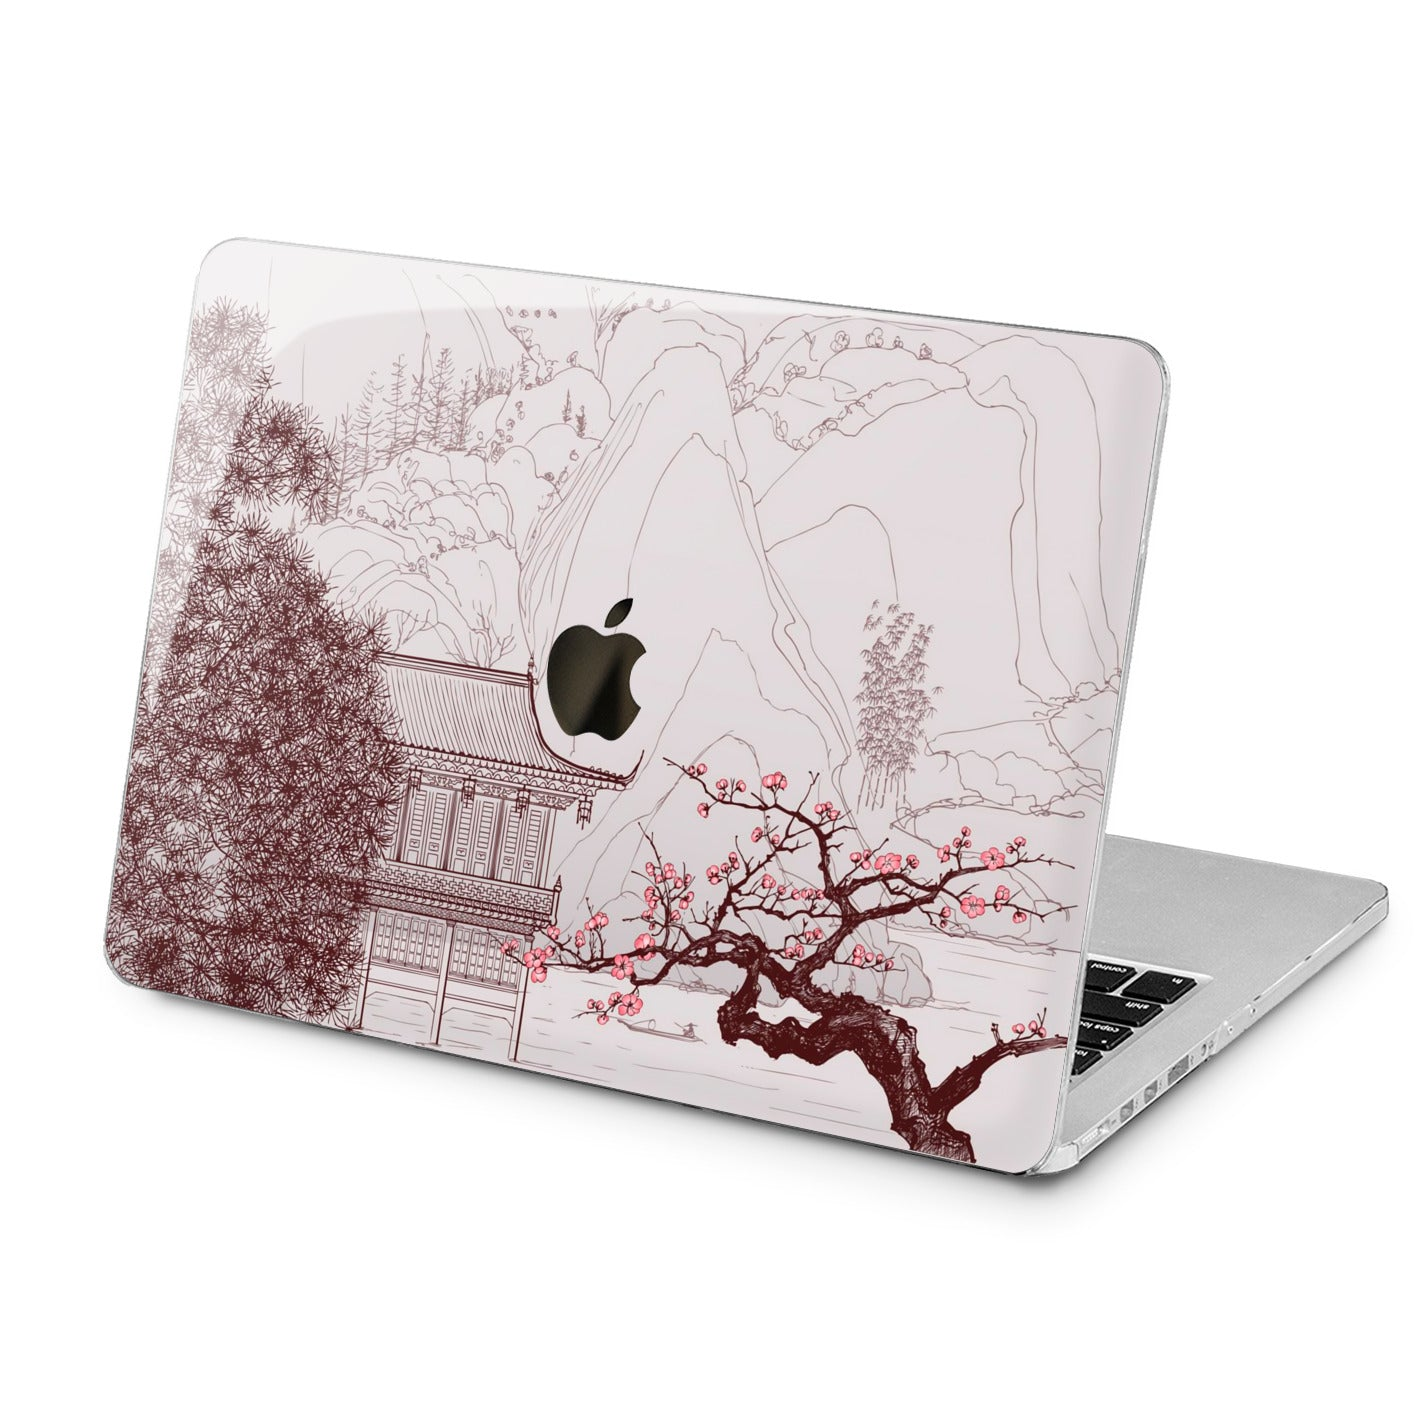 Lex Altern Lex Altern Japanese Art Case for your Laptop Apple Macbook.